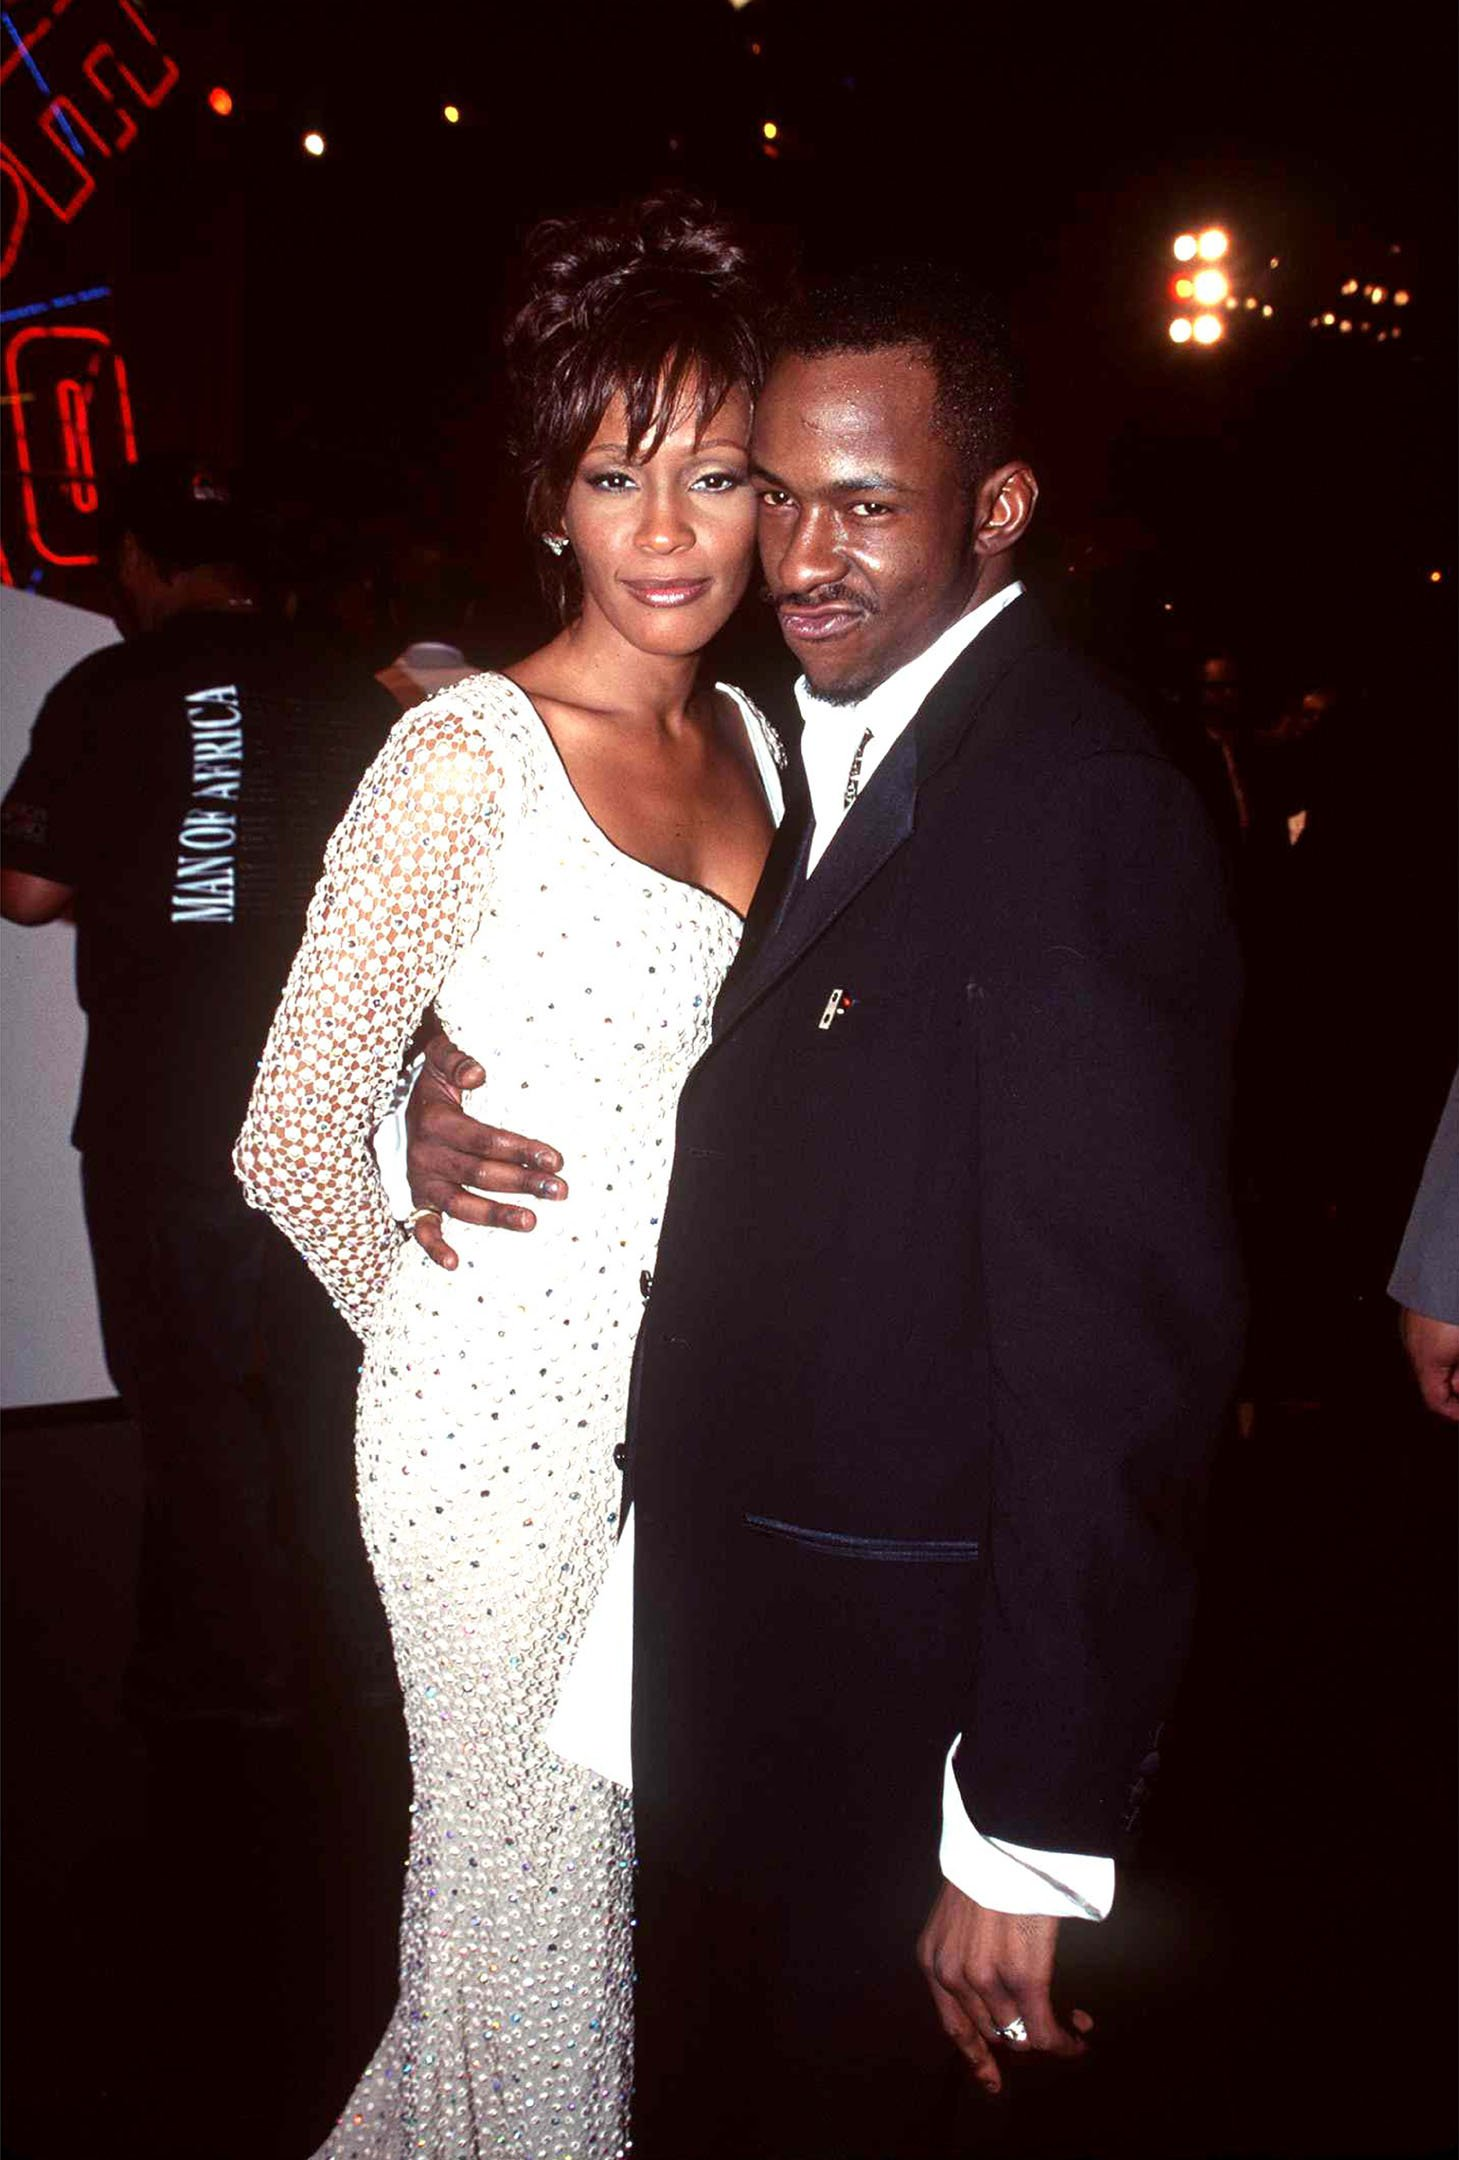 Bobby Brown and Whitney Houston in Los Angeles, CA on November 16, 1996 | Photo: Getty Images